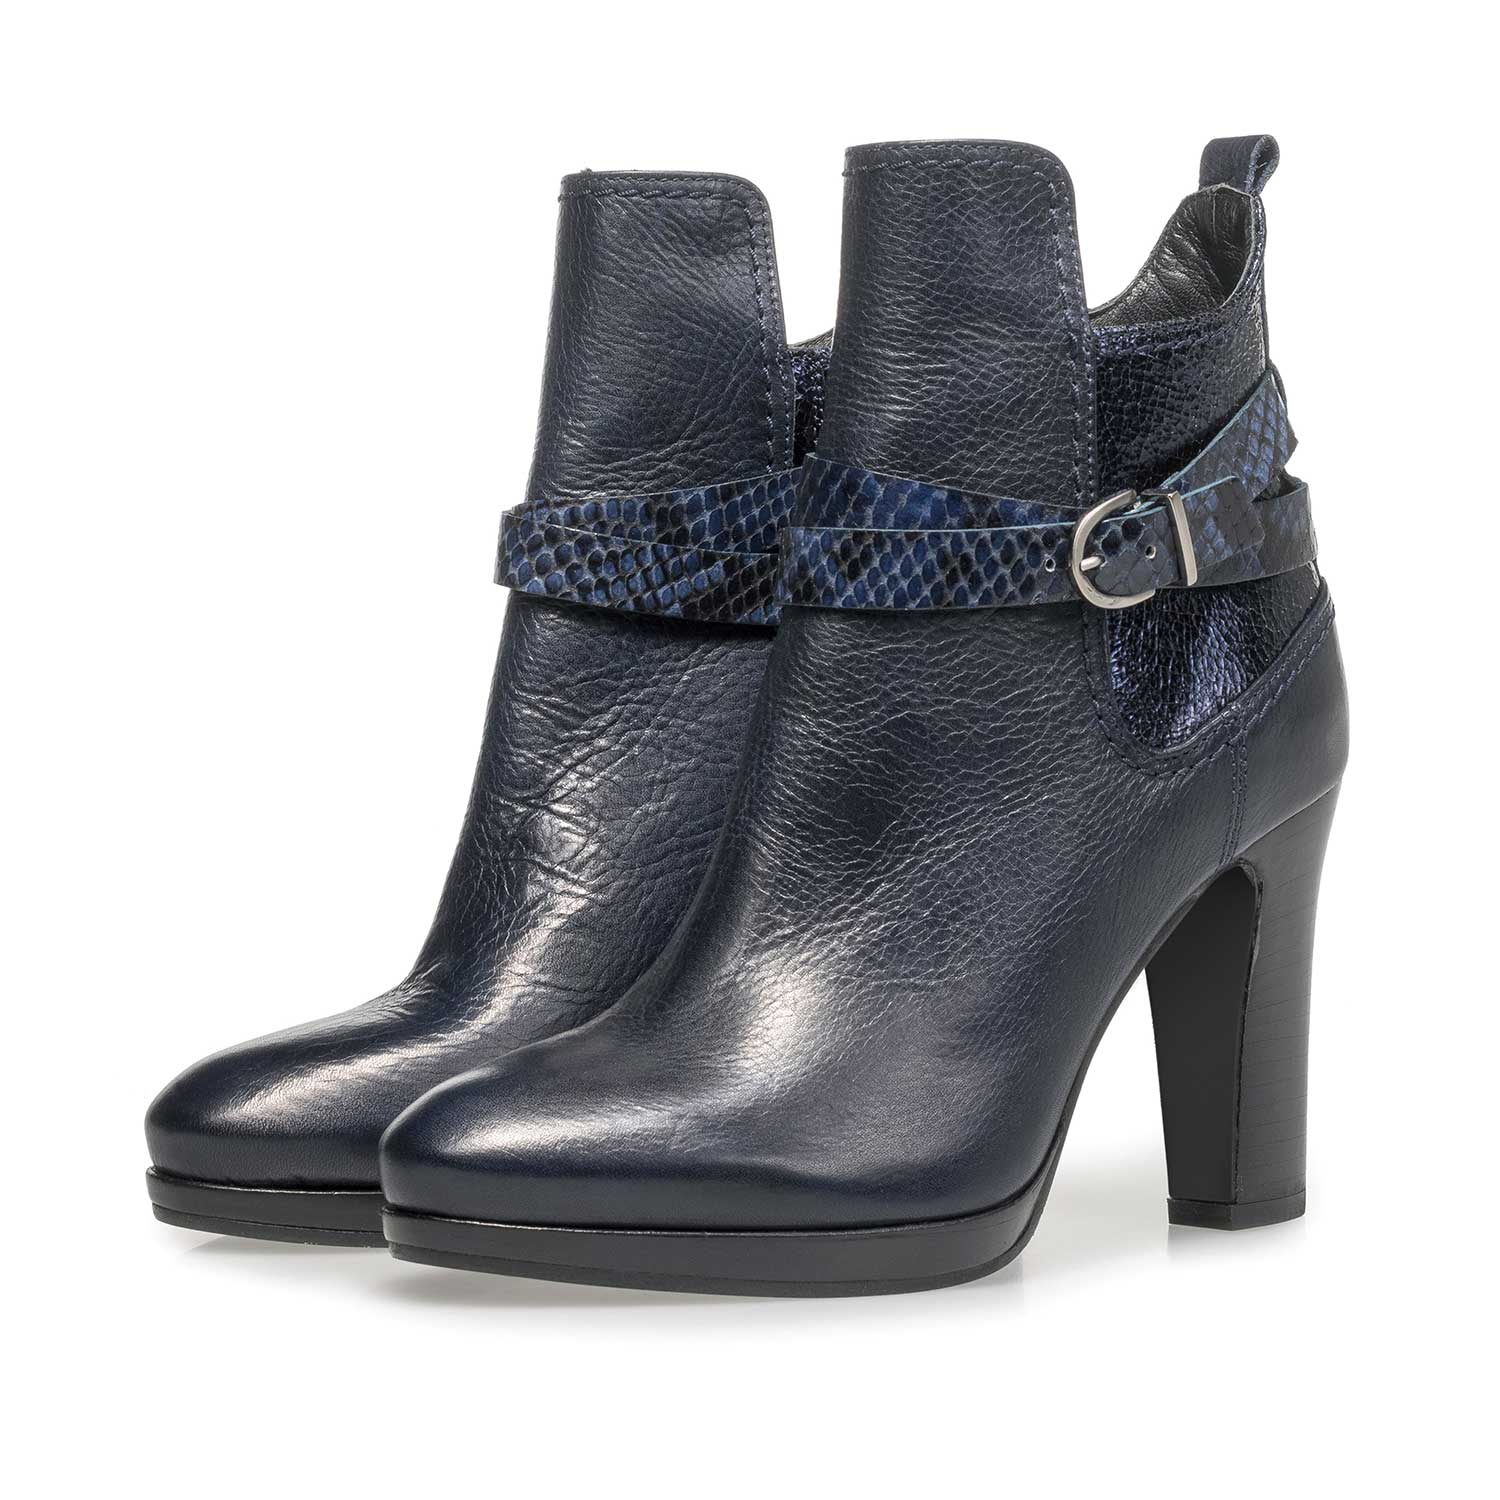 85609/05 - Blue calf leather ankle boots